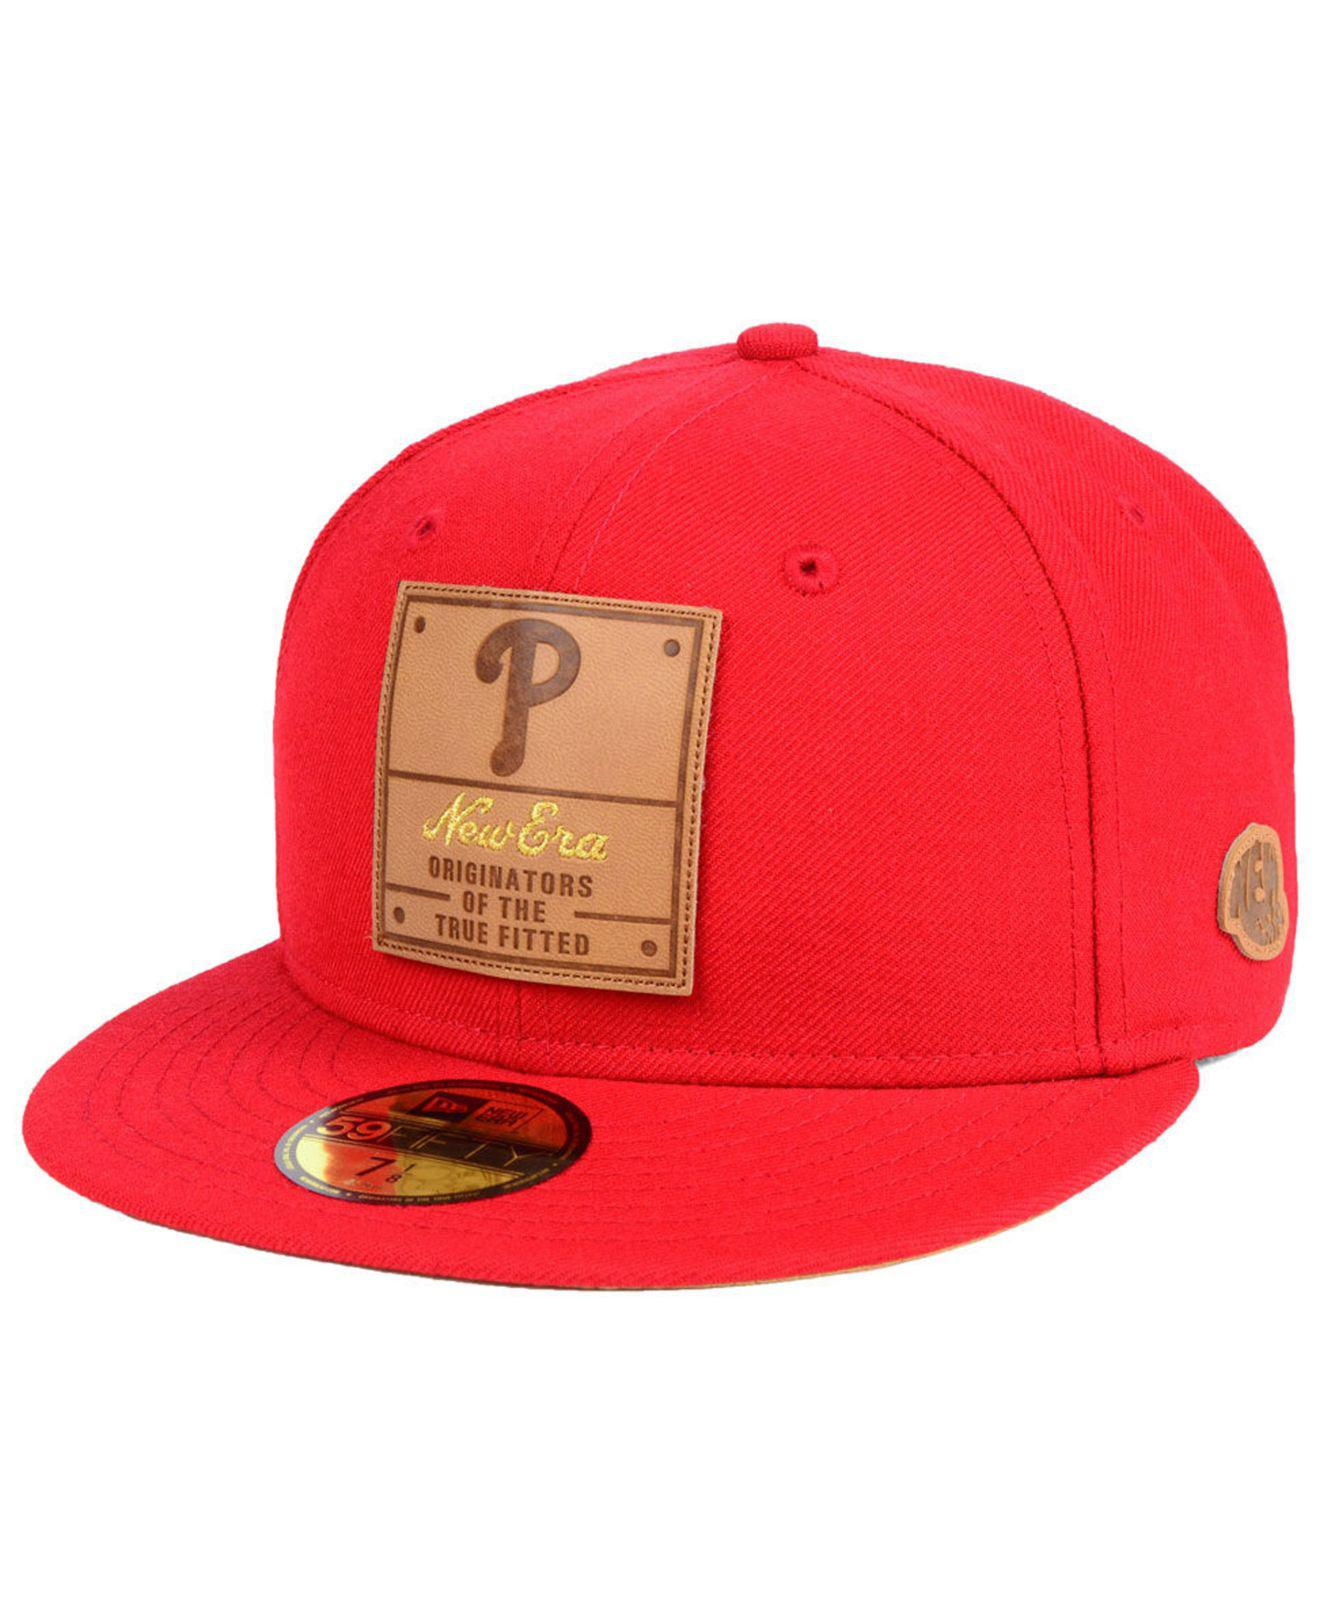 8eeded0b740 Lyst - KTZ Philadelphia Phillies Vintage Team Color 59fifty Fitted ...